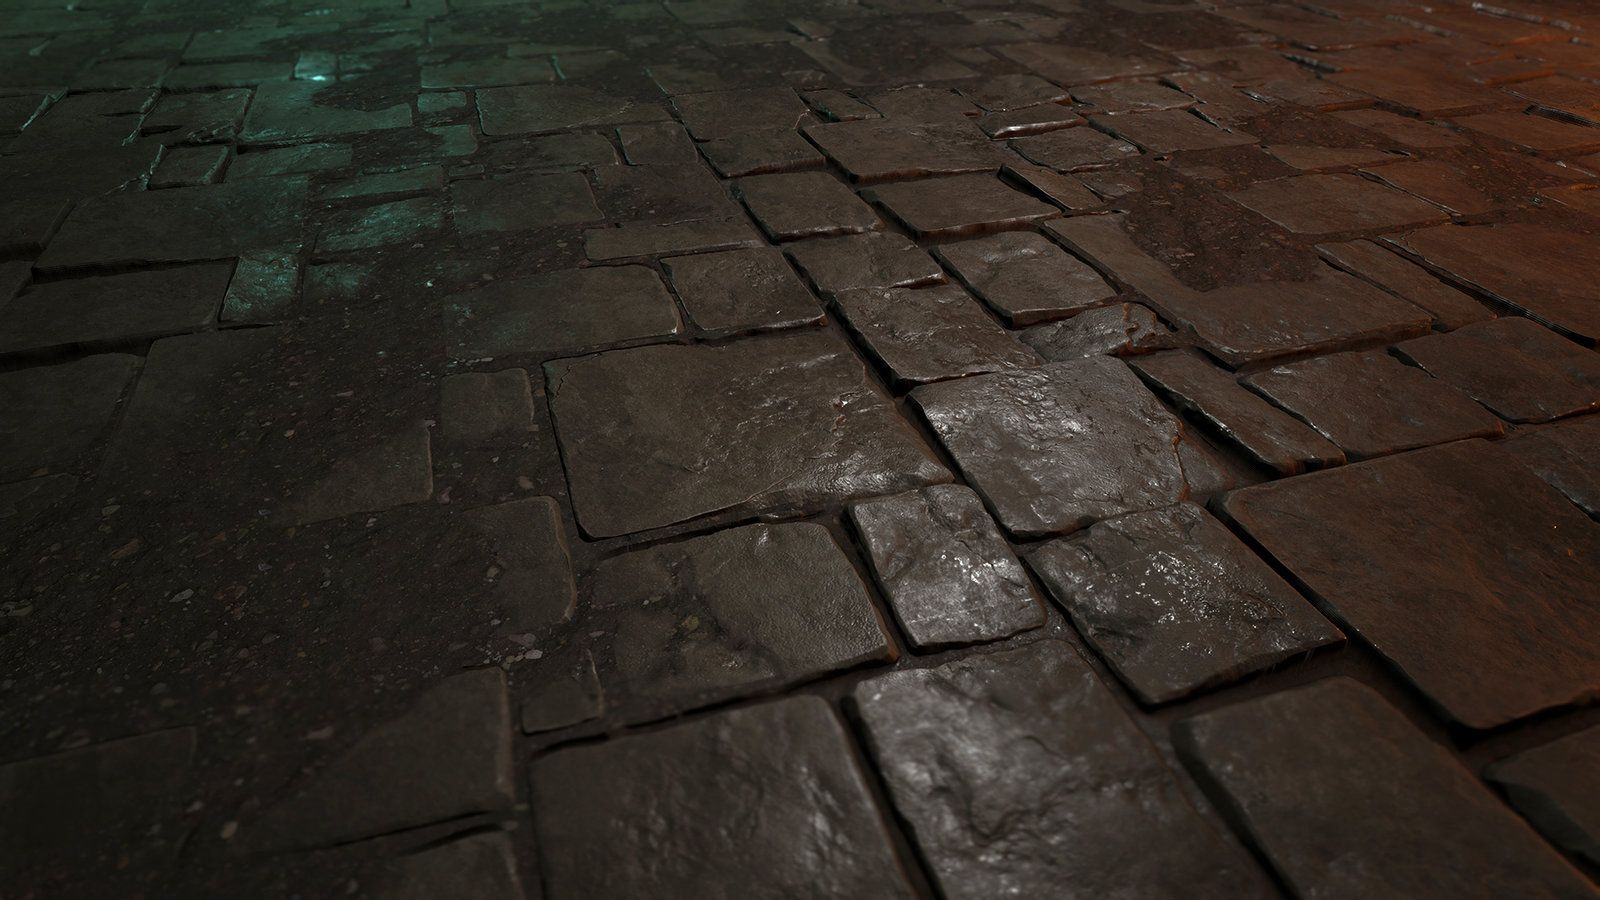 Stone FLoor, Martin Teichmann on ArtStation at https://www.artstation.com/artwork/stone-floor